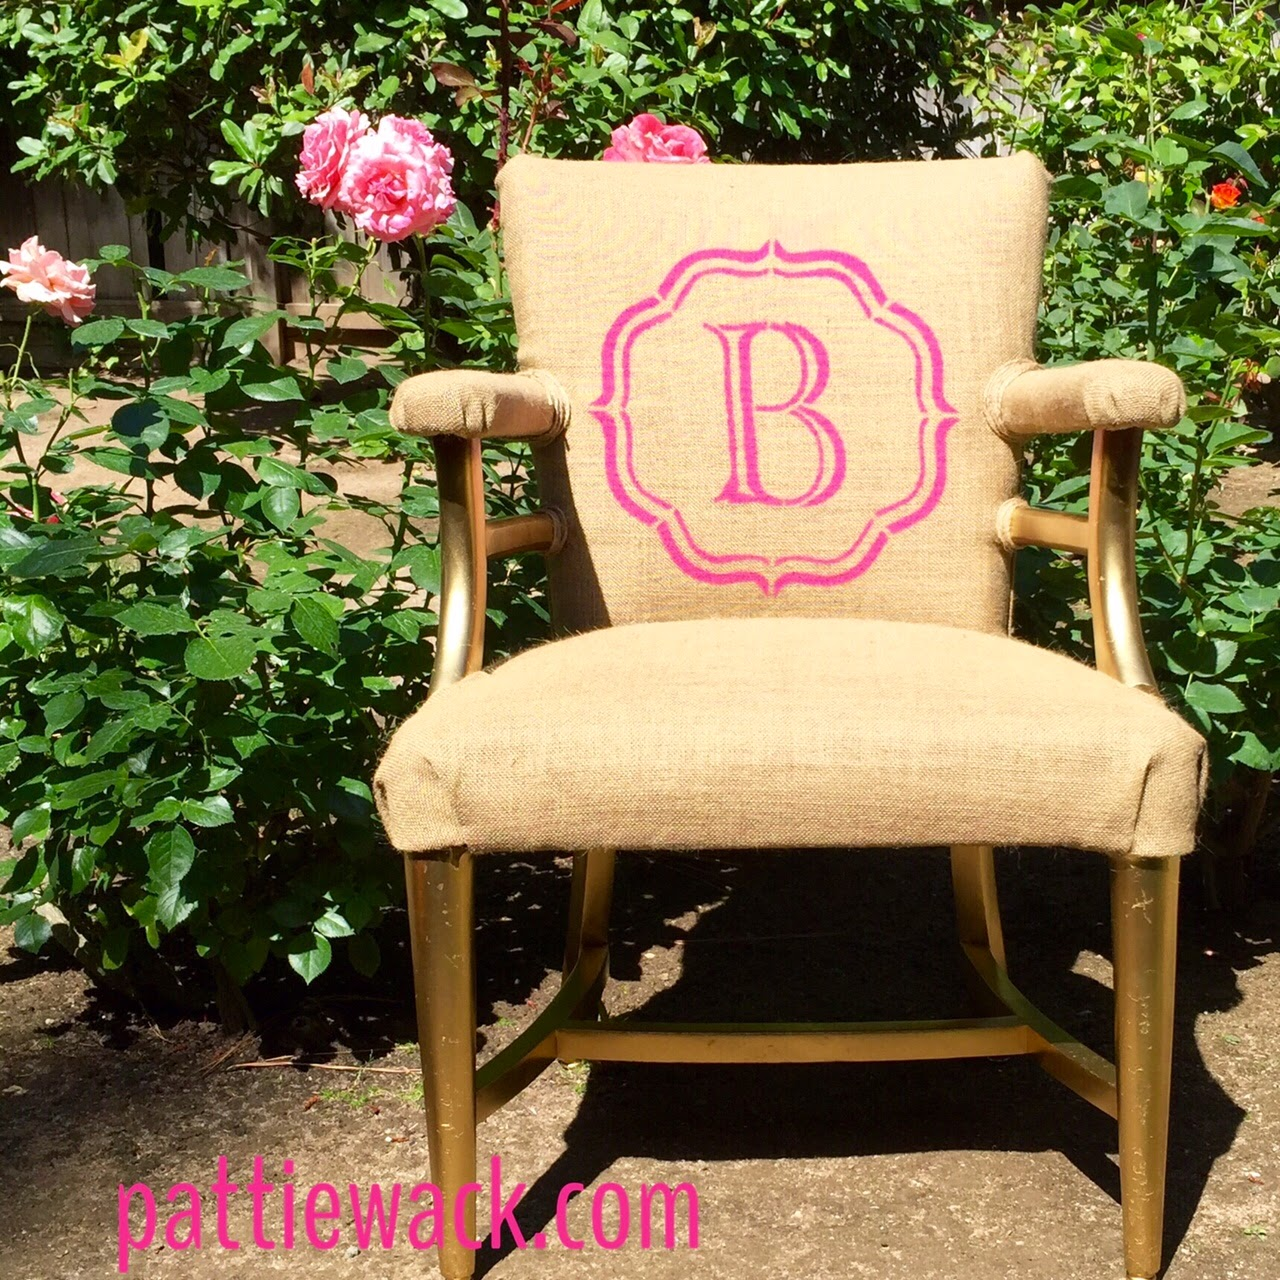 iLoveToCreate Blog: DIY Ugly Chair Makeover